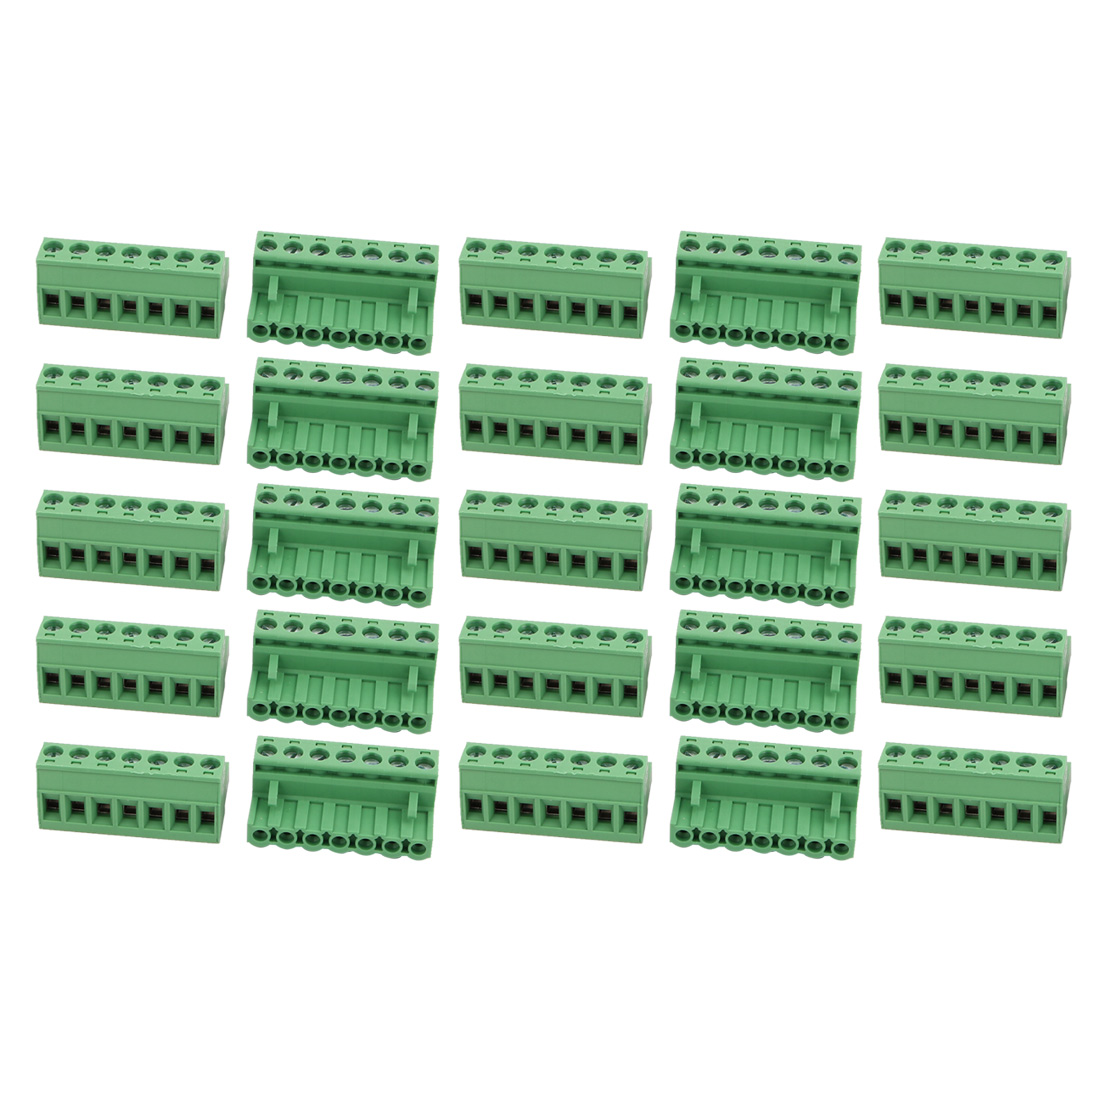 25Pcs AC 300V 15A 5.08mm Pitch 7P Terminal Block Wire Connector for PCB Mounting